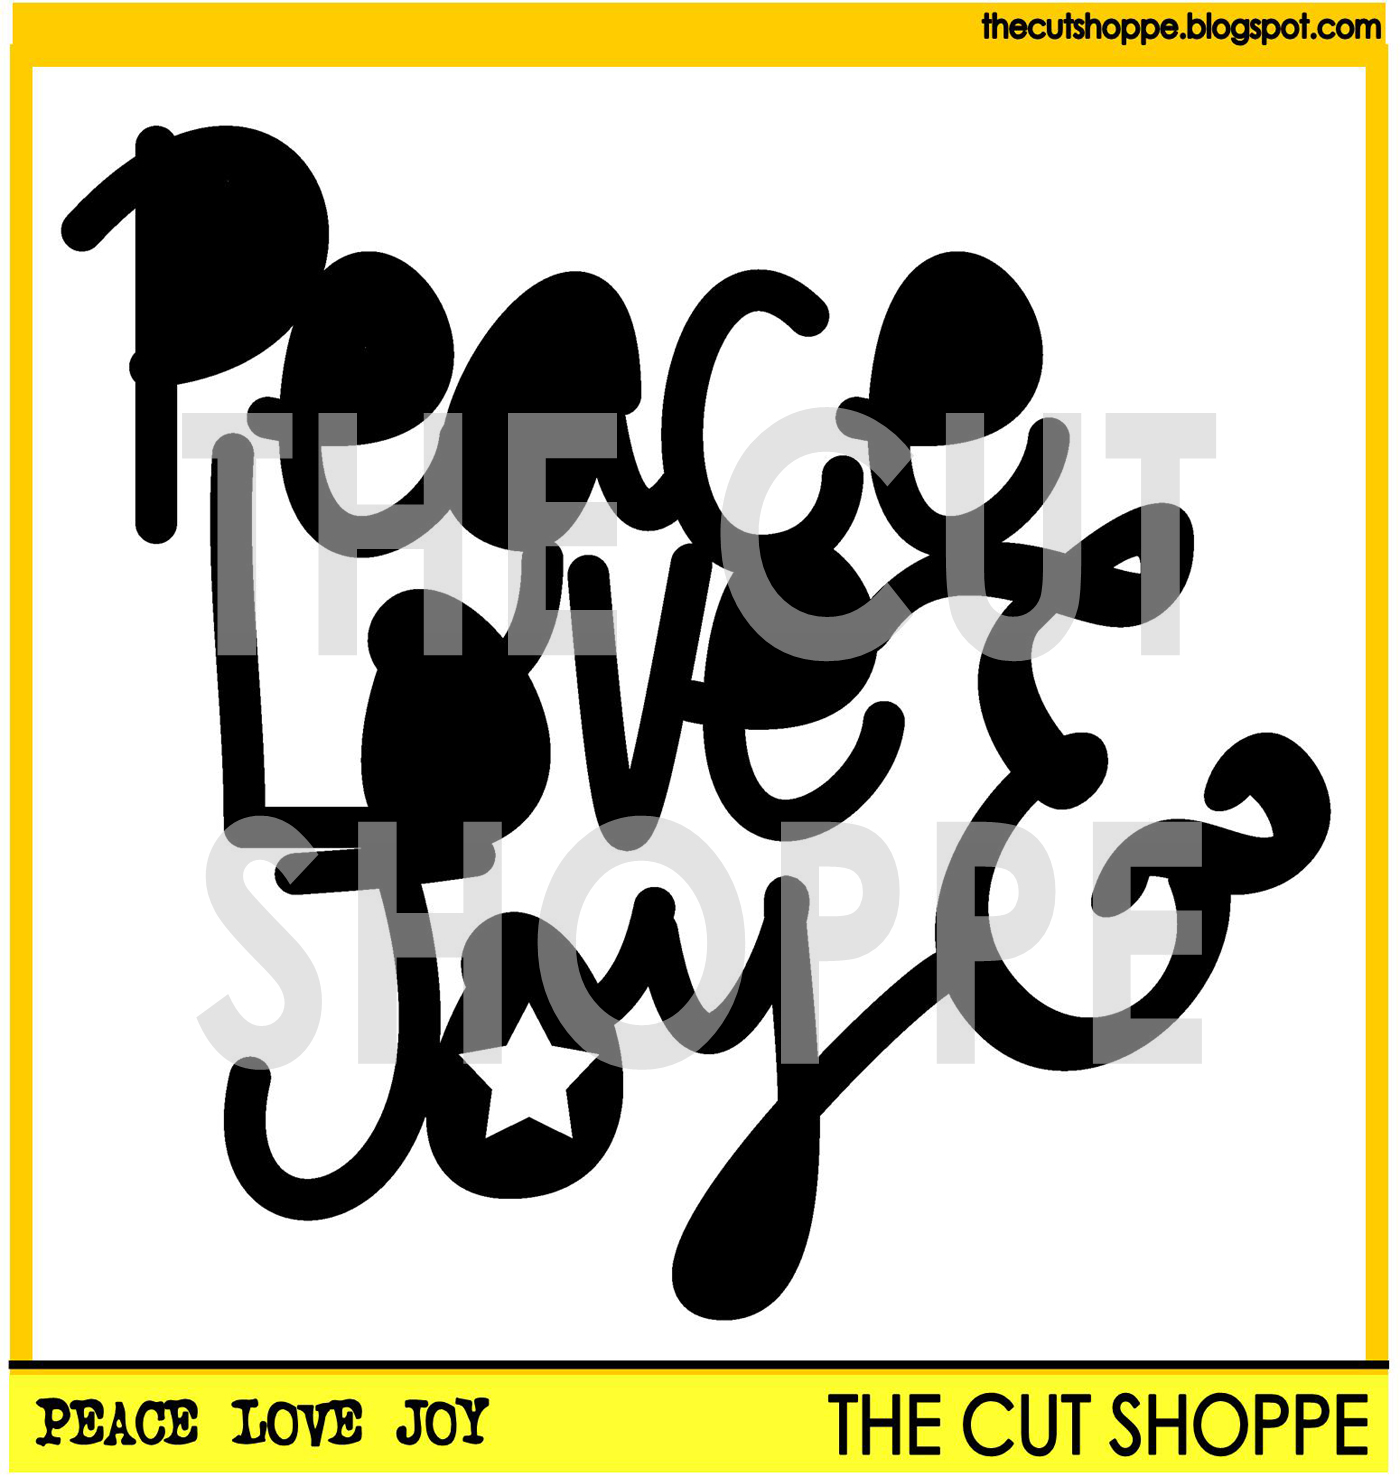 https://www.etsy.com/listing/212852145/the-peace-love-joy-cut-file-is-a?ref=shop_home_active_2